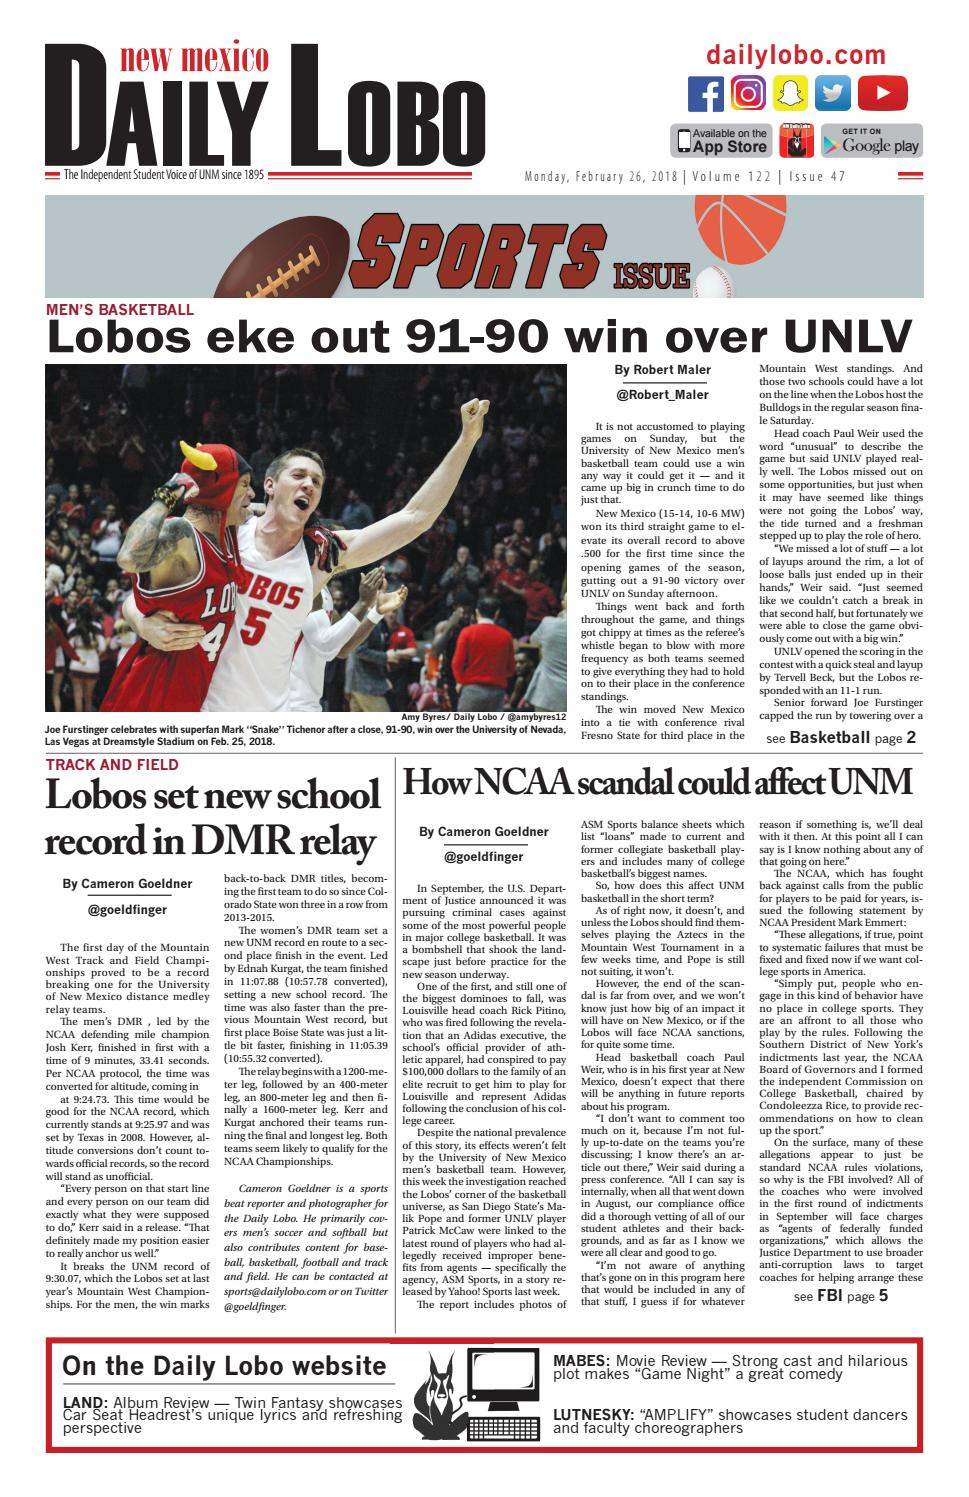 Daily Lobo 02/26/2018 by UNM Student Publications - issuu